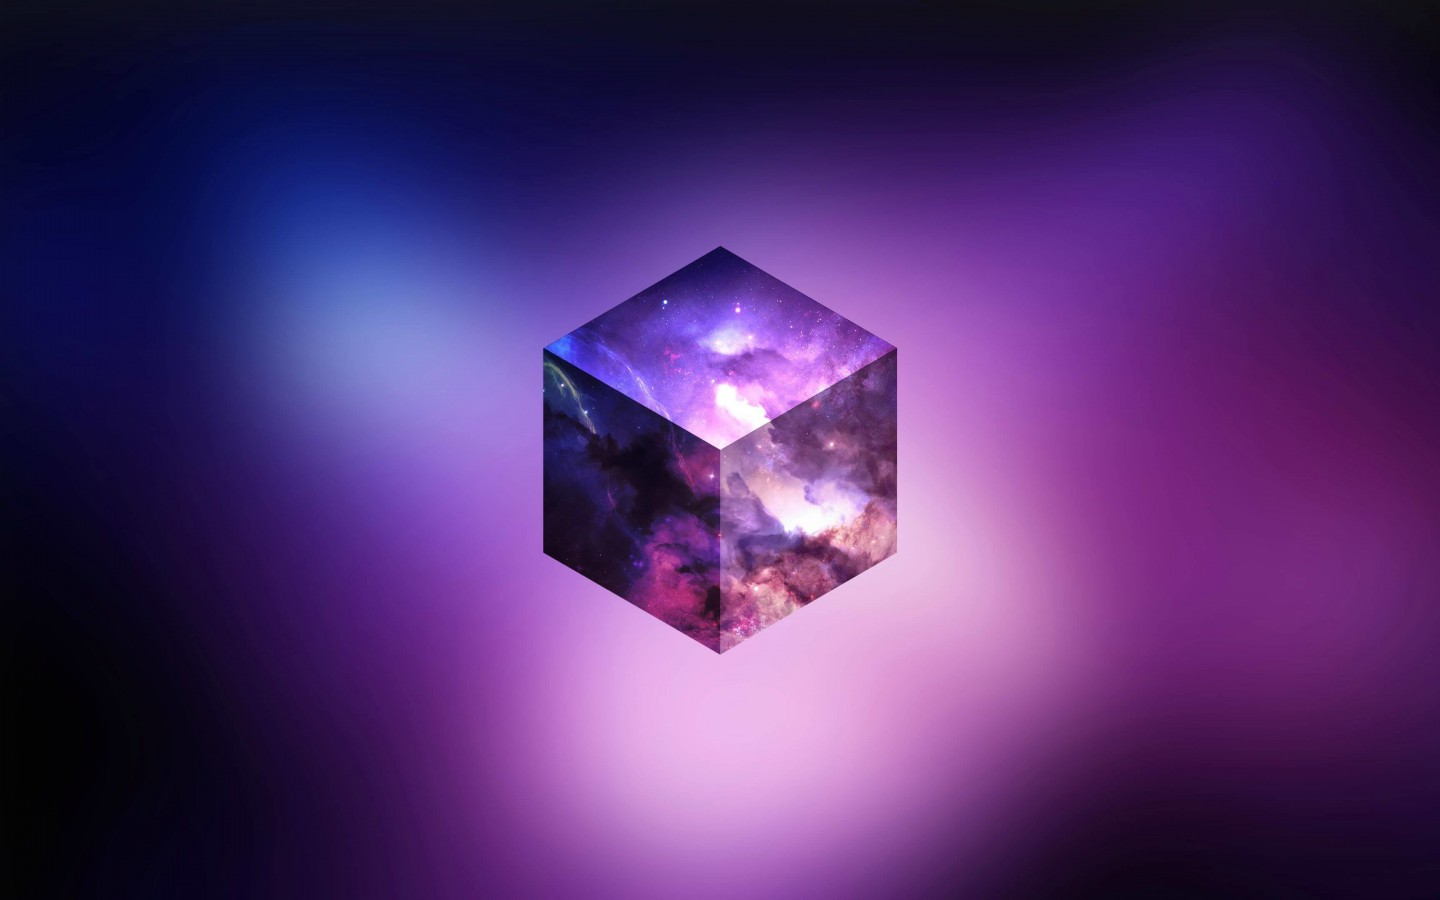 Cosmic Cube Wallpaper for Desktop 1440x900